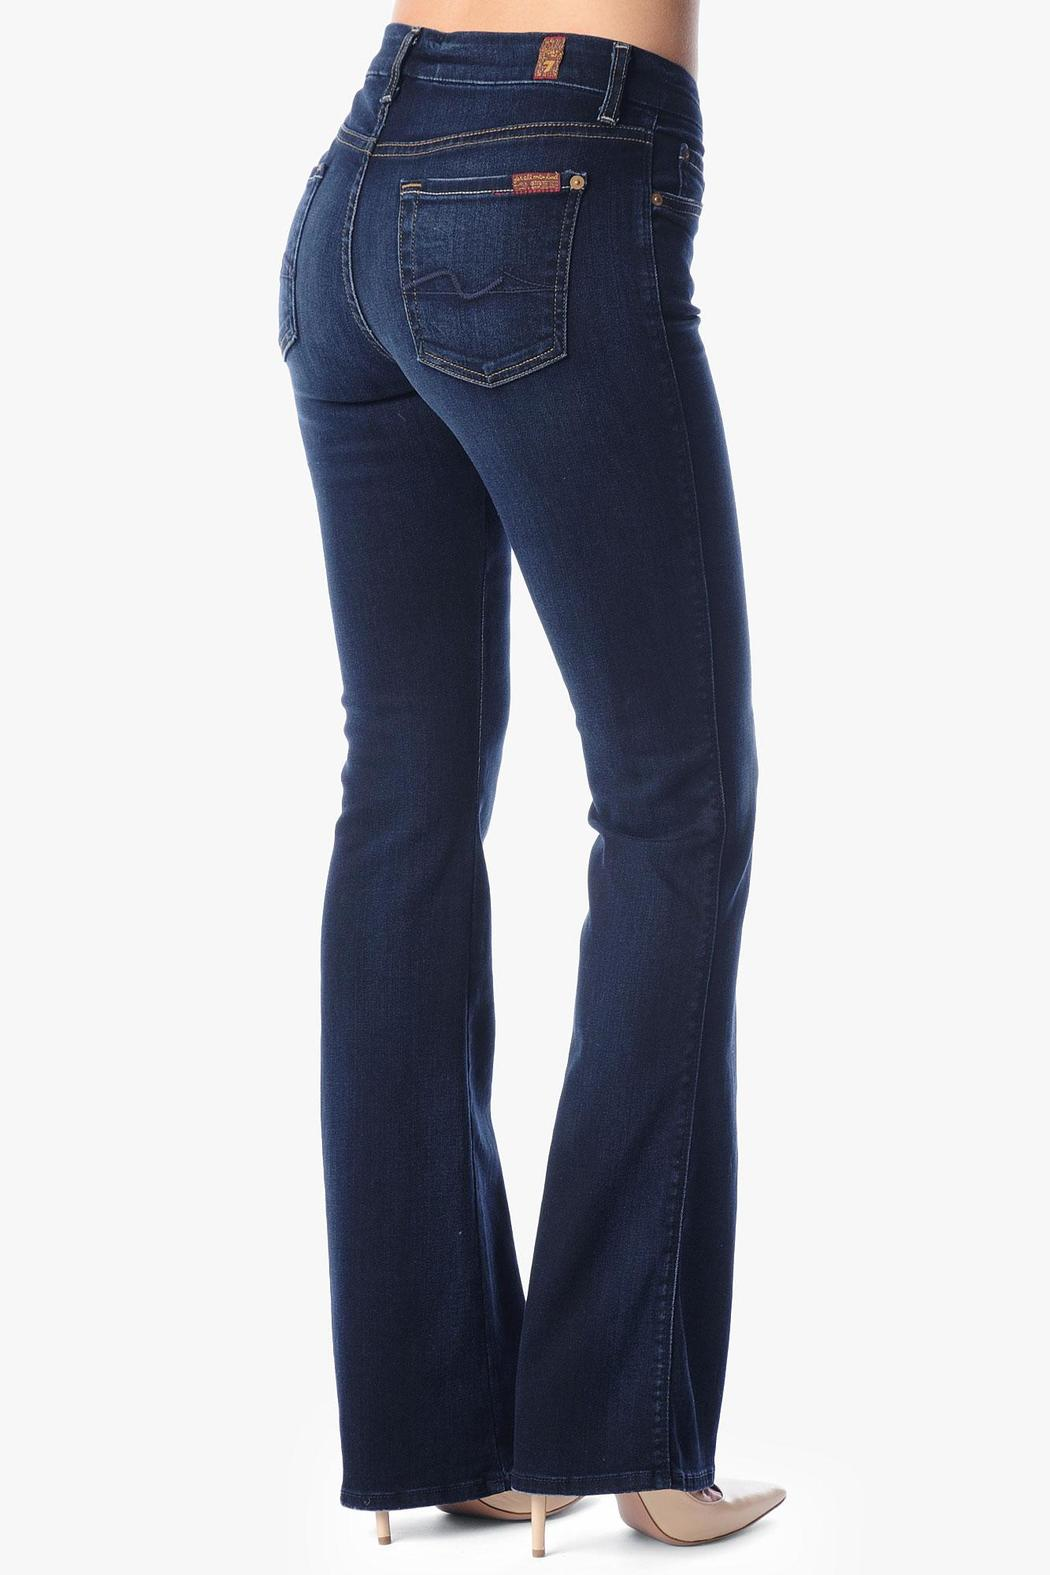 7 For all Mankind Kimmie Bootcut Merci-Blue - Front Full Image